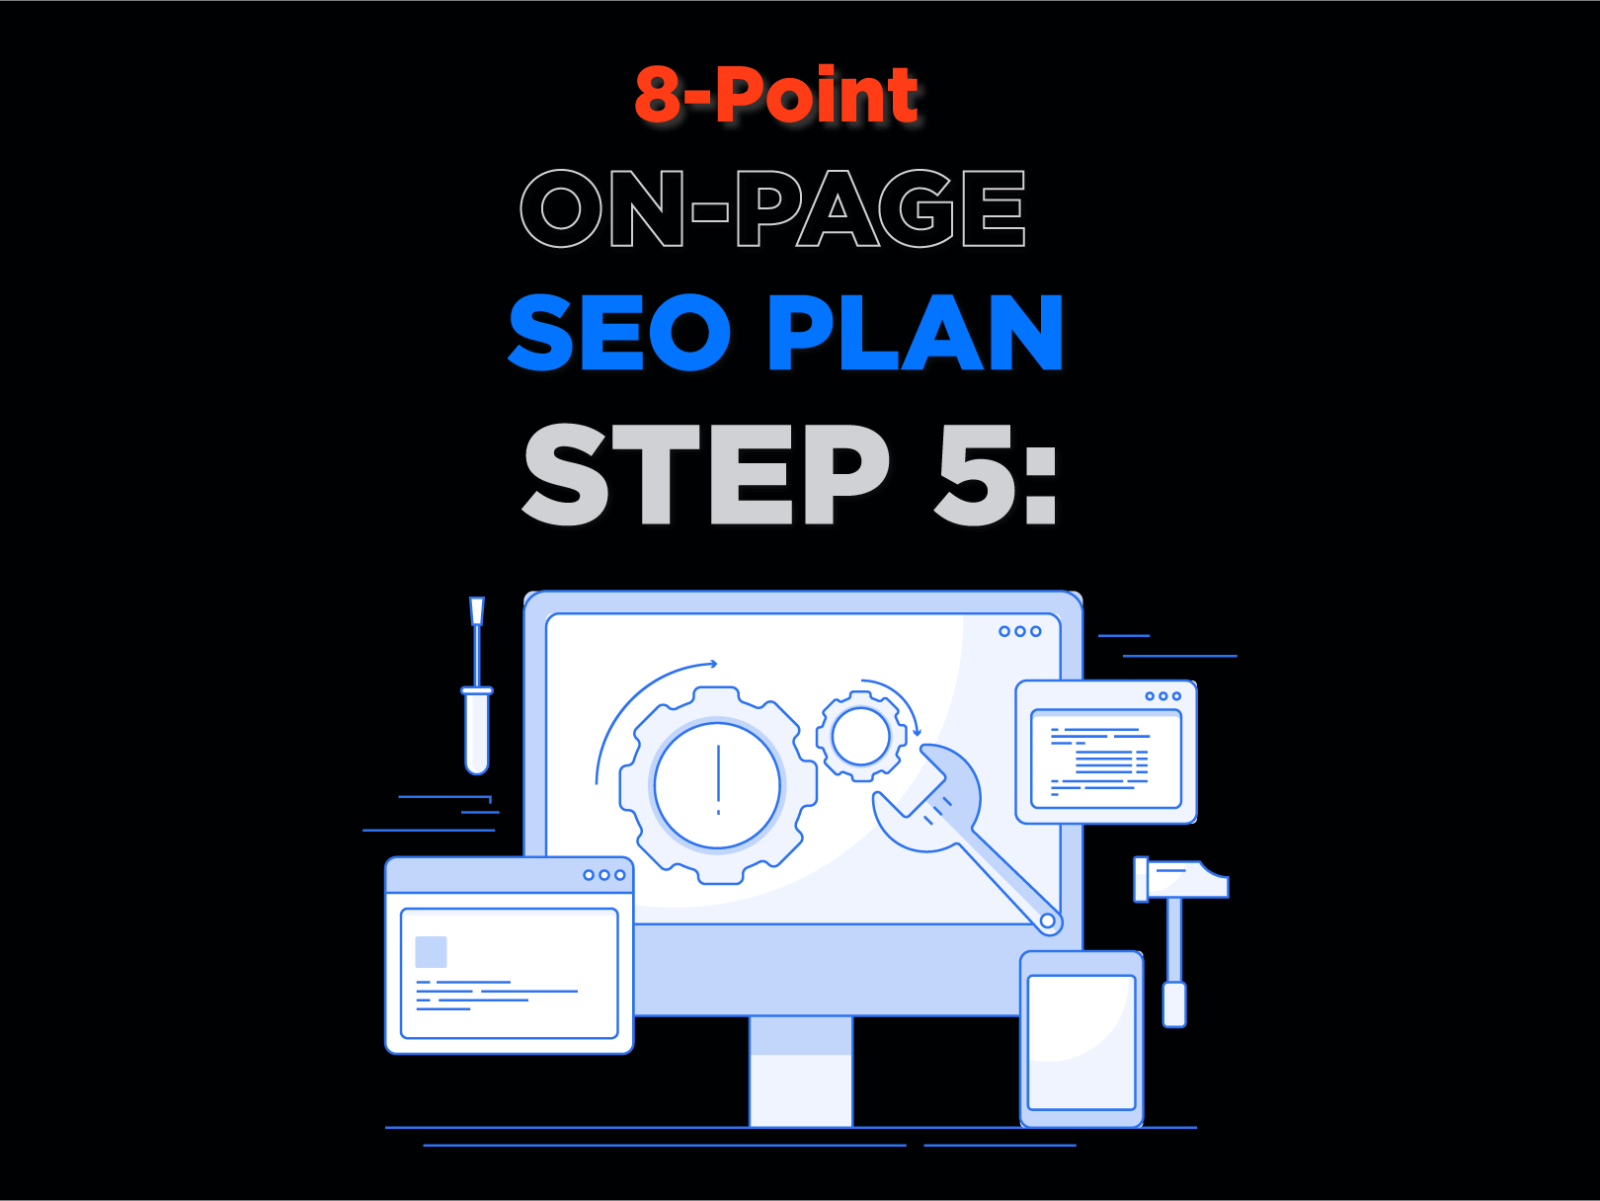 8-Point On-Page SEO Plan, Step 5: 24/7